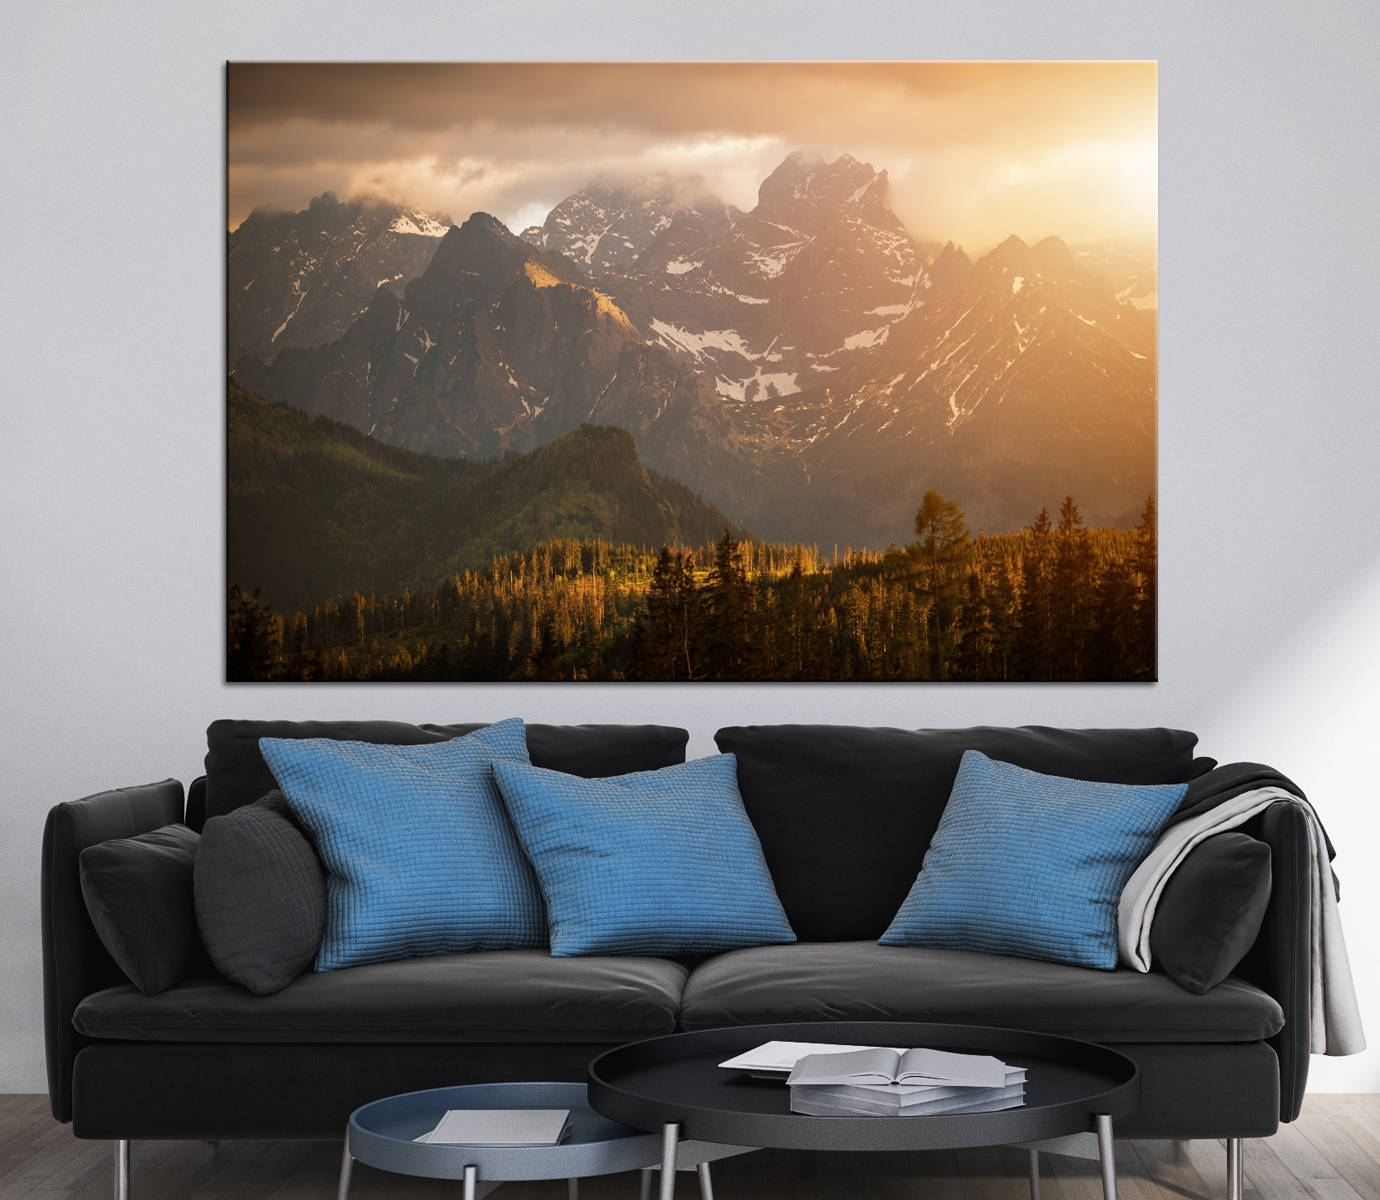 Mountains Sunset Scenery Photoprint Multi Panel Canvas Print Wild Pertaining To Most Up To Date Mountains Canvas Wall Art (View 4 of 15)